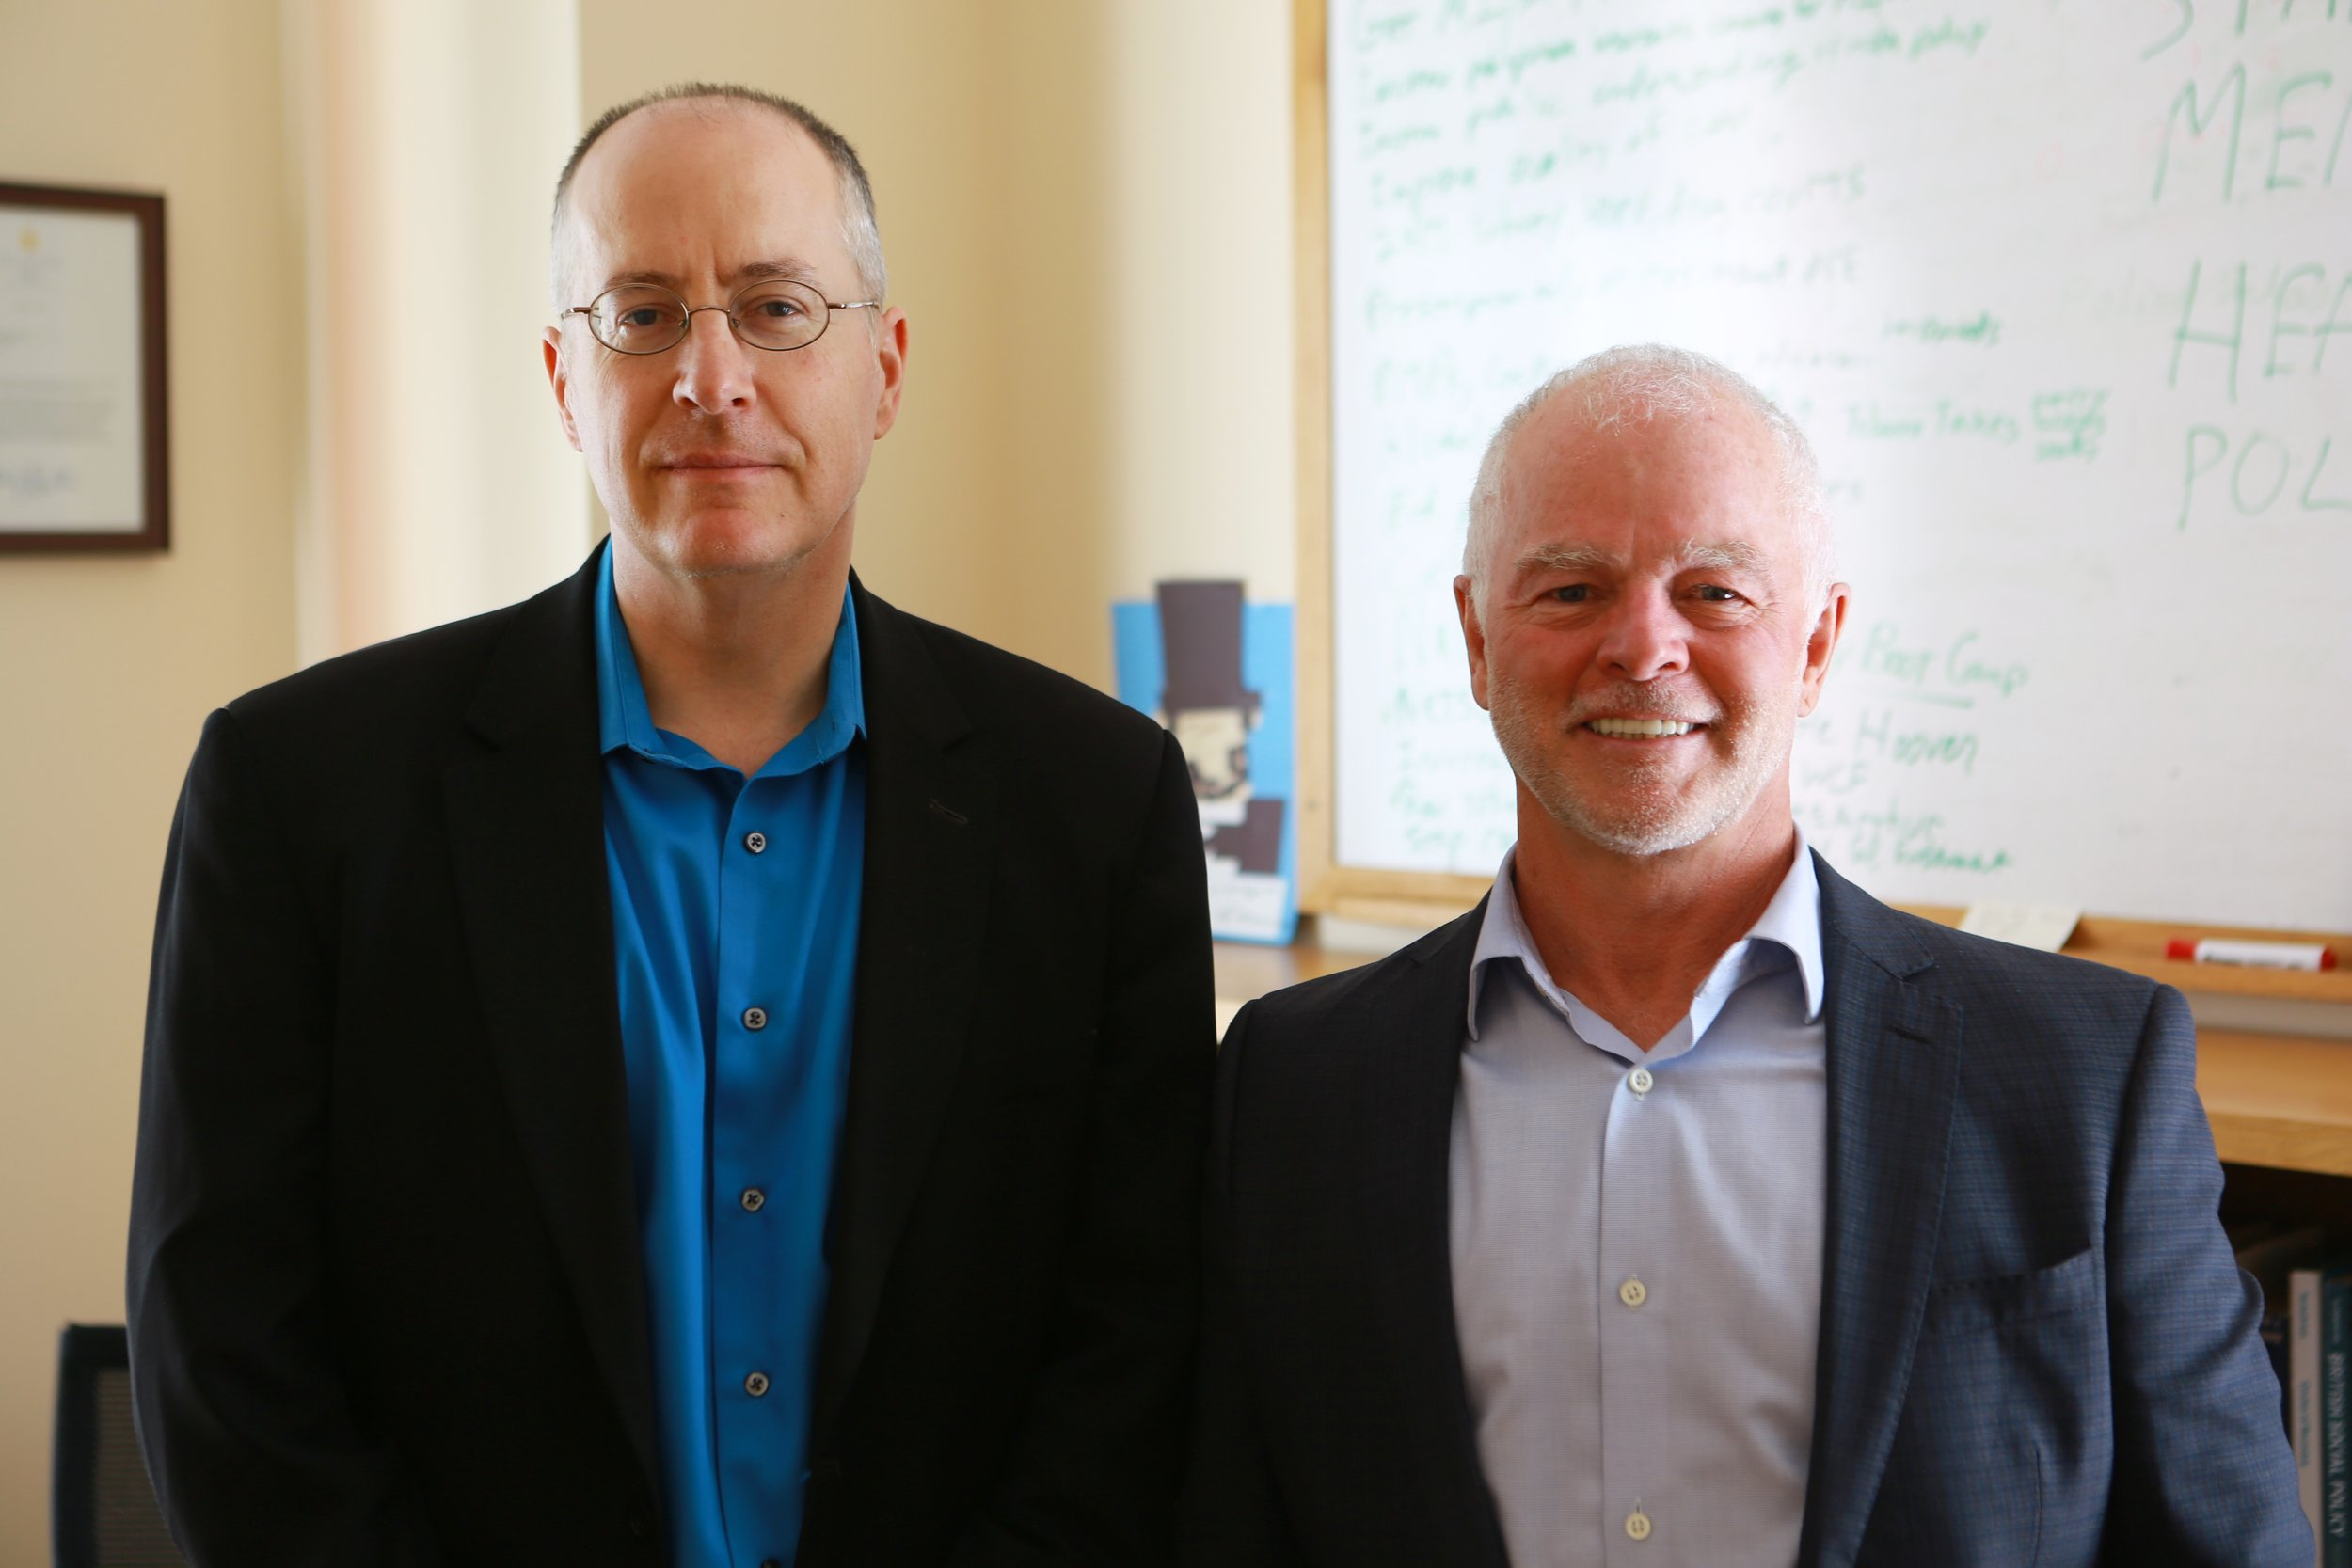 10-Mike Pond with Dr Keith Humphreys at Stanford University.jpg